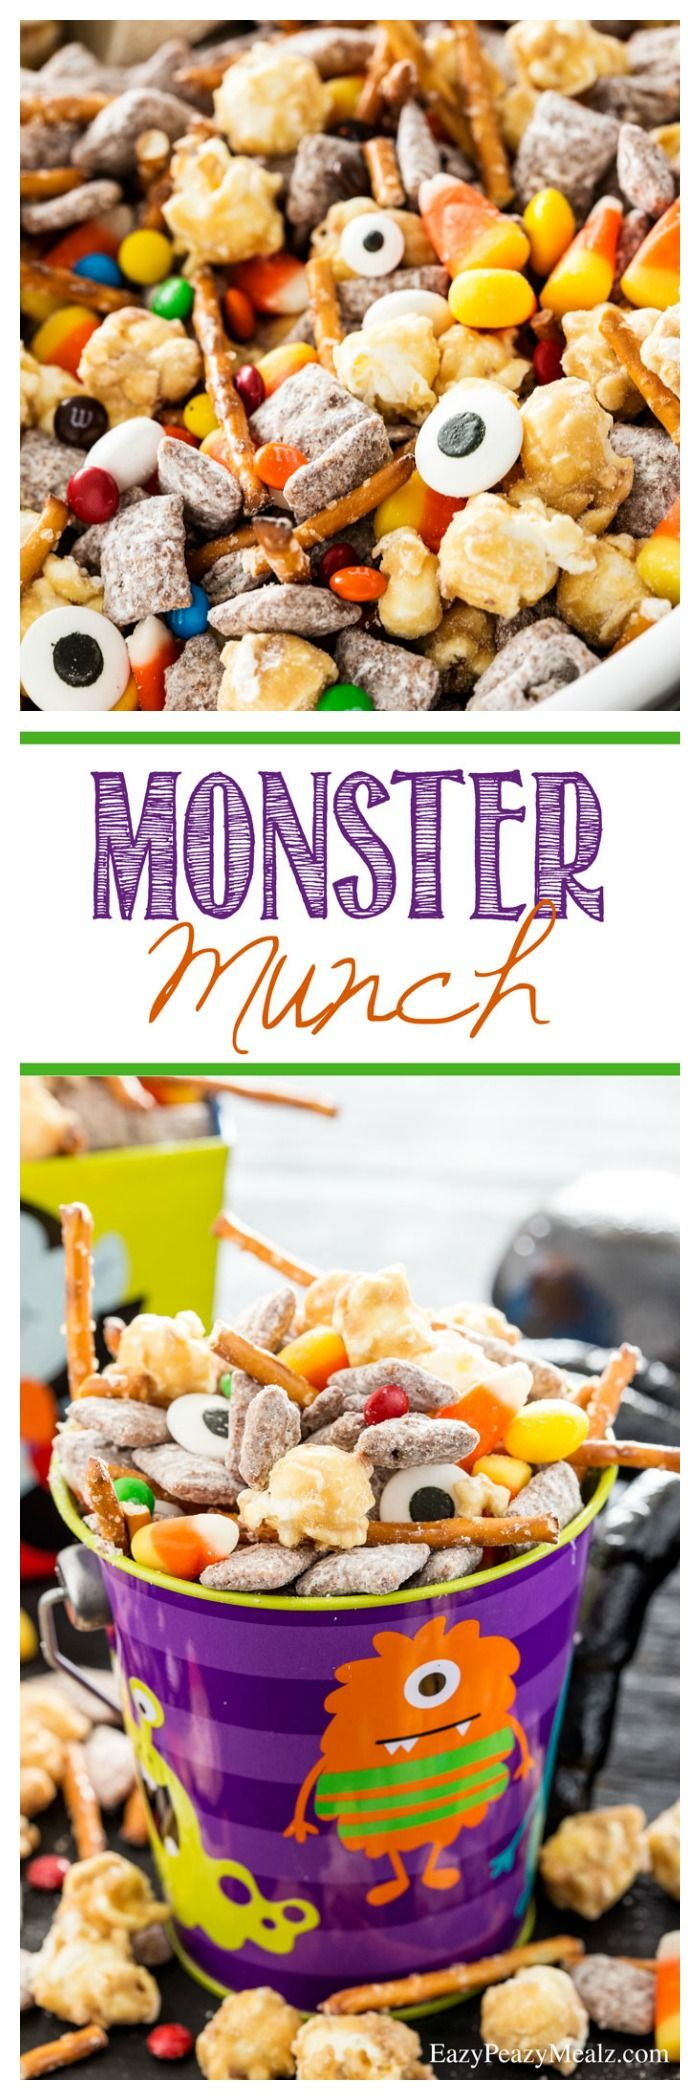 monster munch halloween snackshalloween birthdayhalloween halloween3rd birthdaybirthday party ideasbirthday - Halloween Birthday Party Ideas